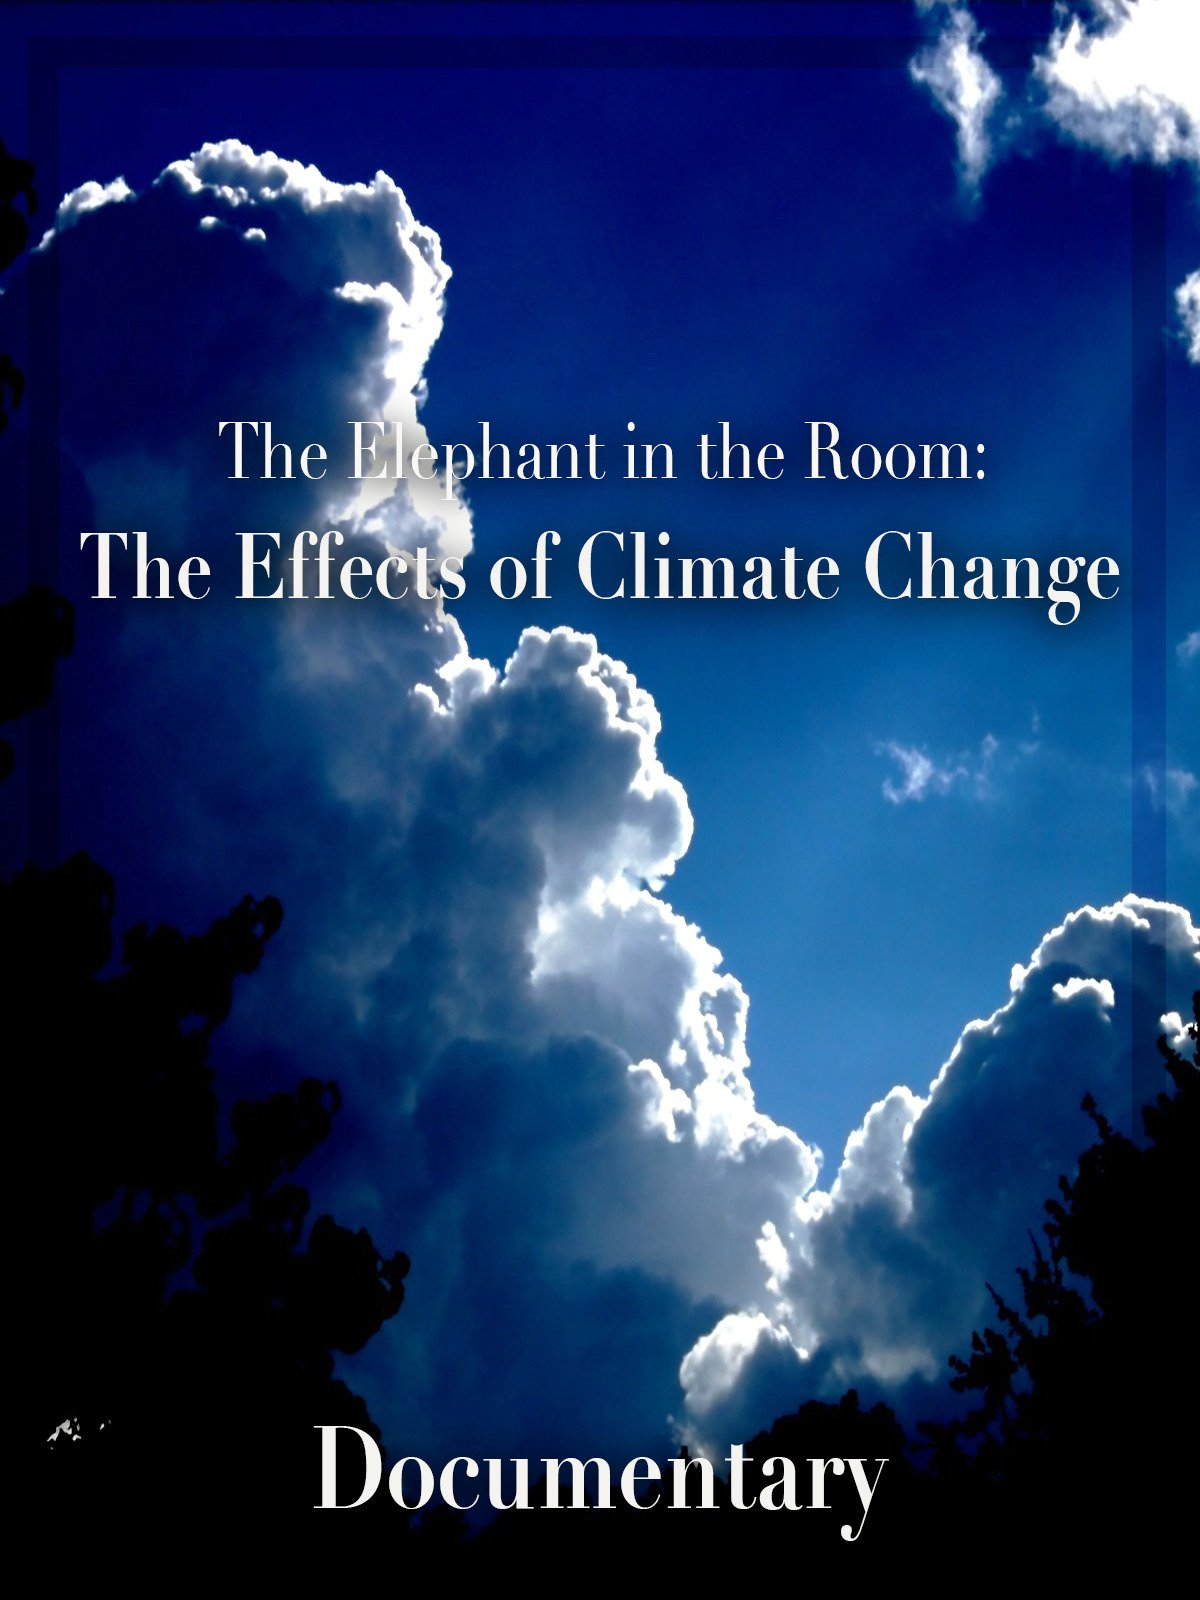 The Elephant in the Room: The Effects of Climate Change Documentary